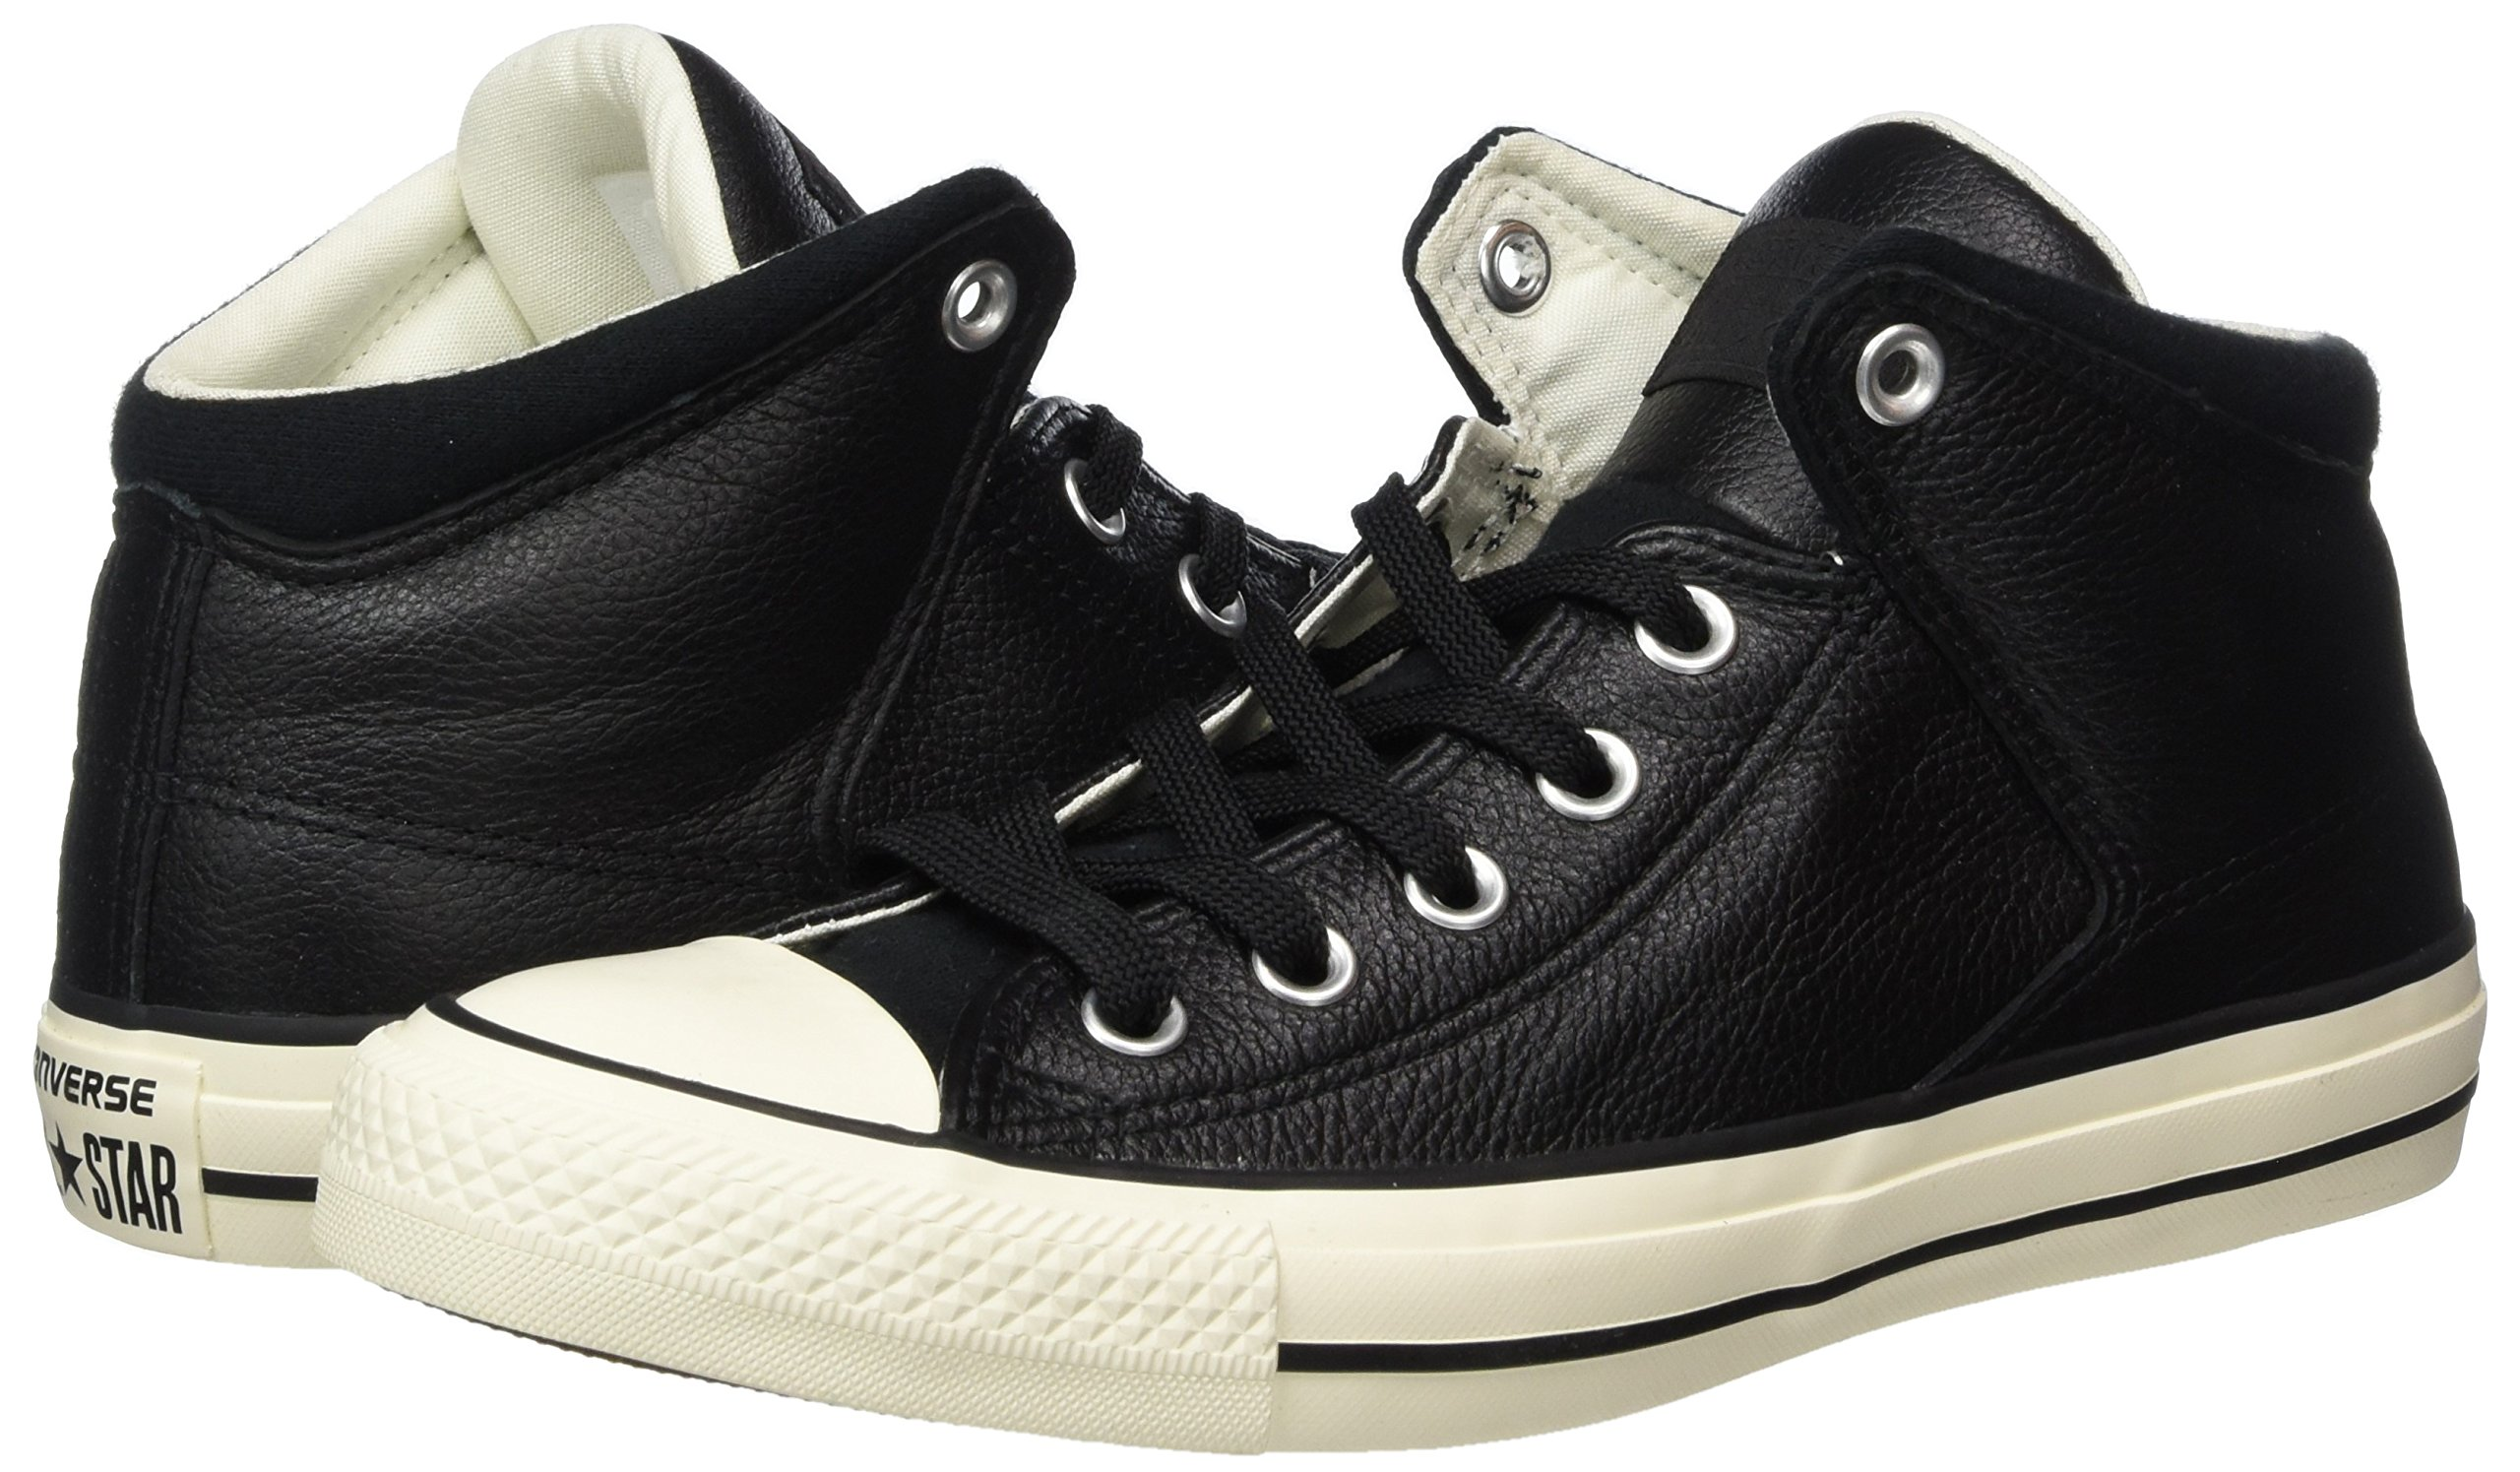 Converse Unisex Chuck Taylor All Star High Street Kurim Mid Sneaker Leather Black 10.5 D(M) US by Converse (Image #5)